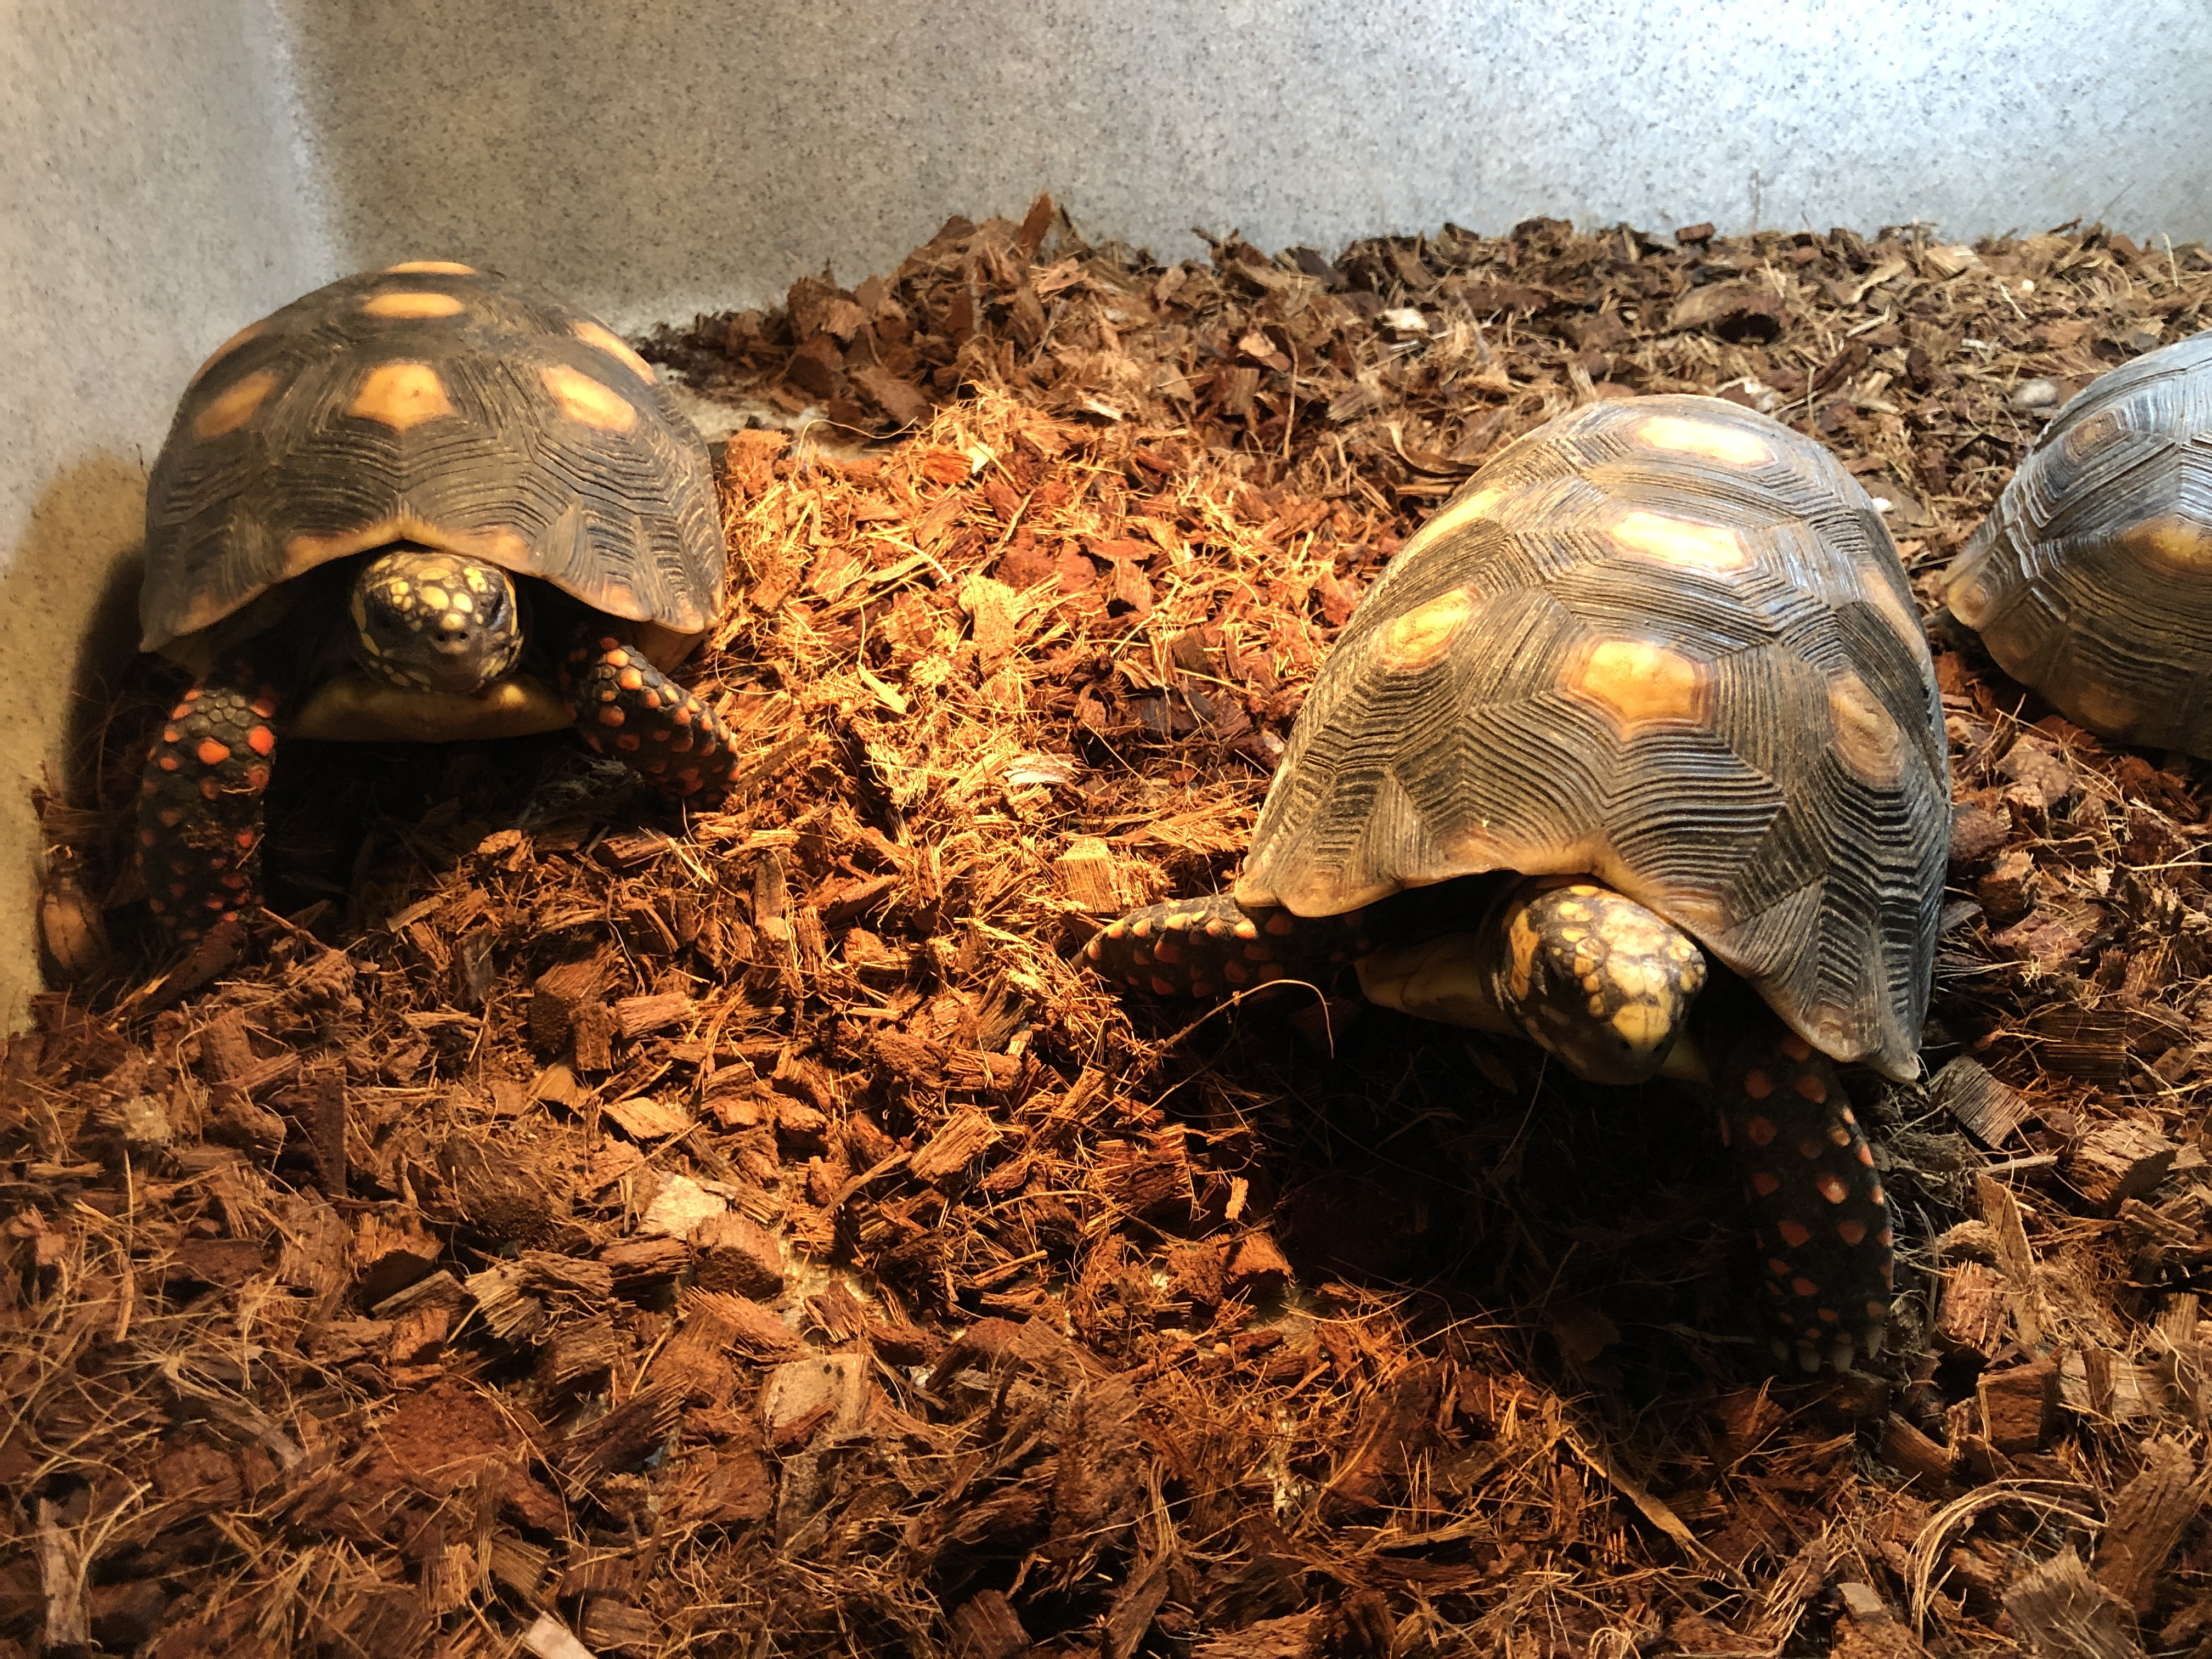 Z OUT OF STOCK - RED FOOT TORTOISE - CB 4-5